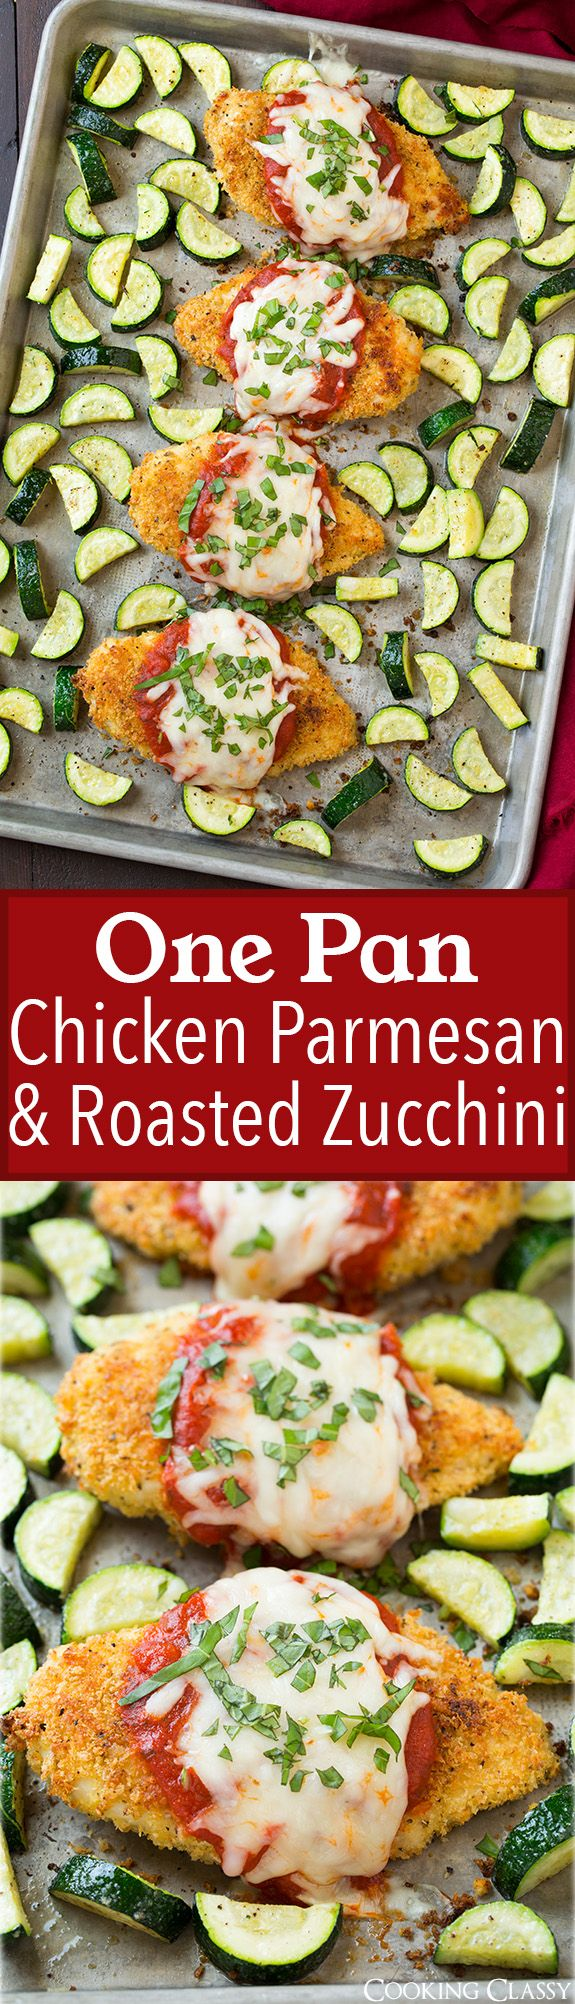 One Pan Chicken Parmesan and Roasted Zucchini - try this with oat or almond…